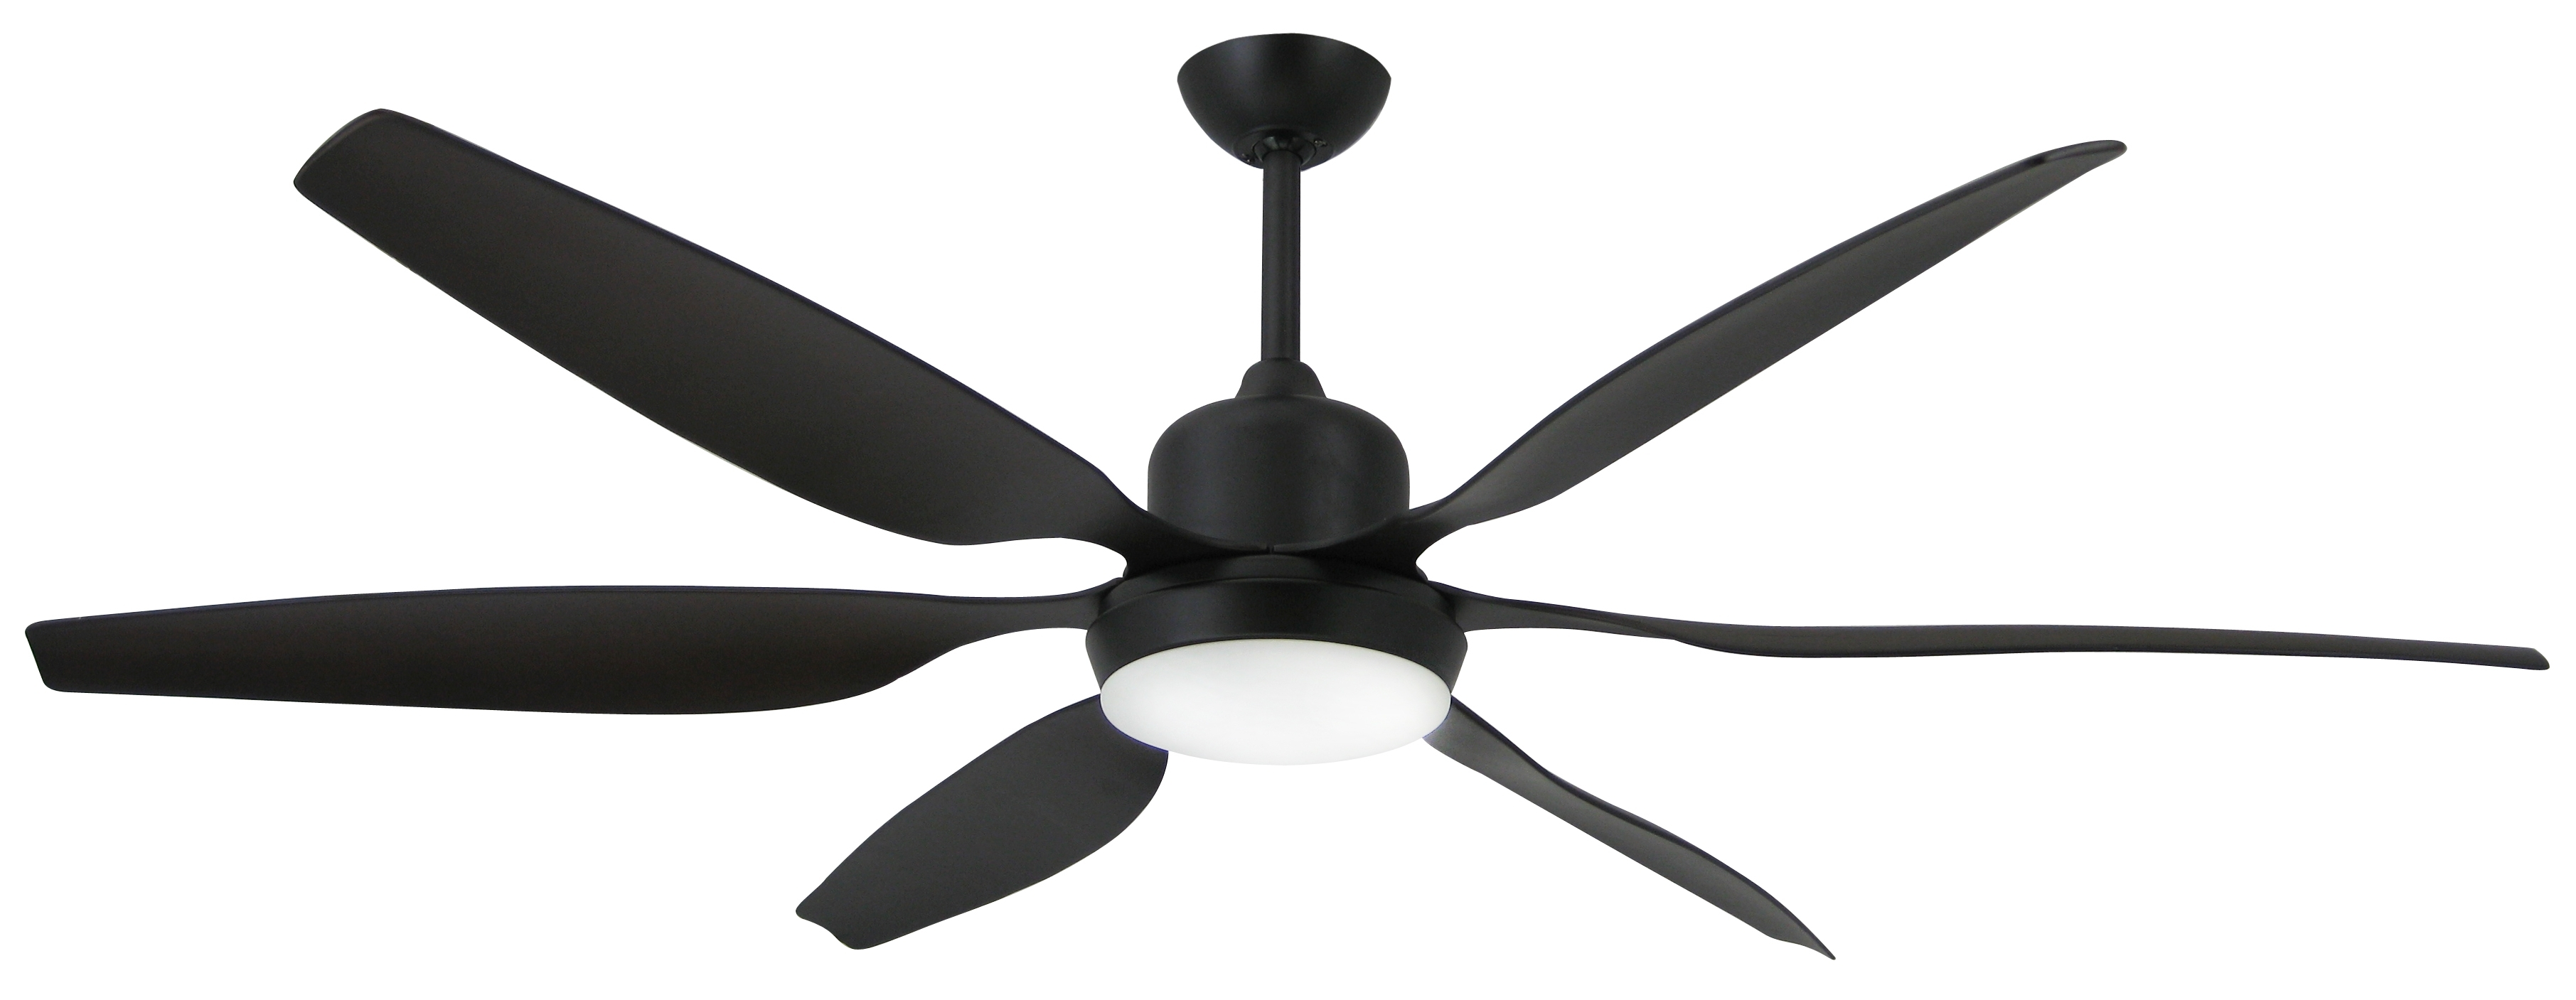 Well Known Industrial Outdoor Ceiling Fans – Pixball Within Industrial Outdoor Ceiling Fans With Light (View 17 of 20)